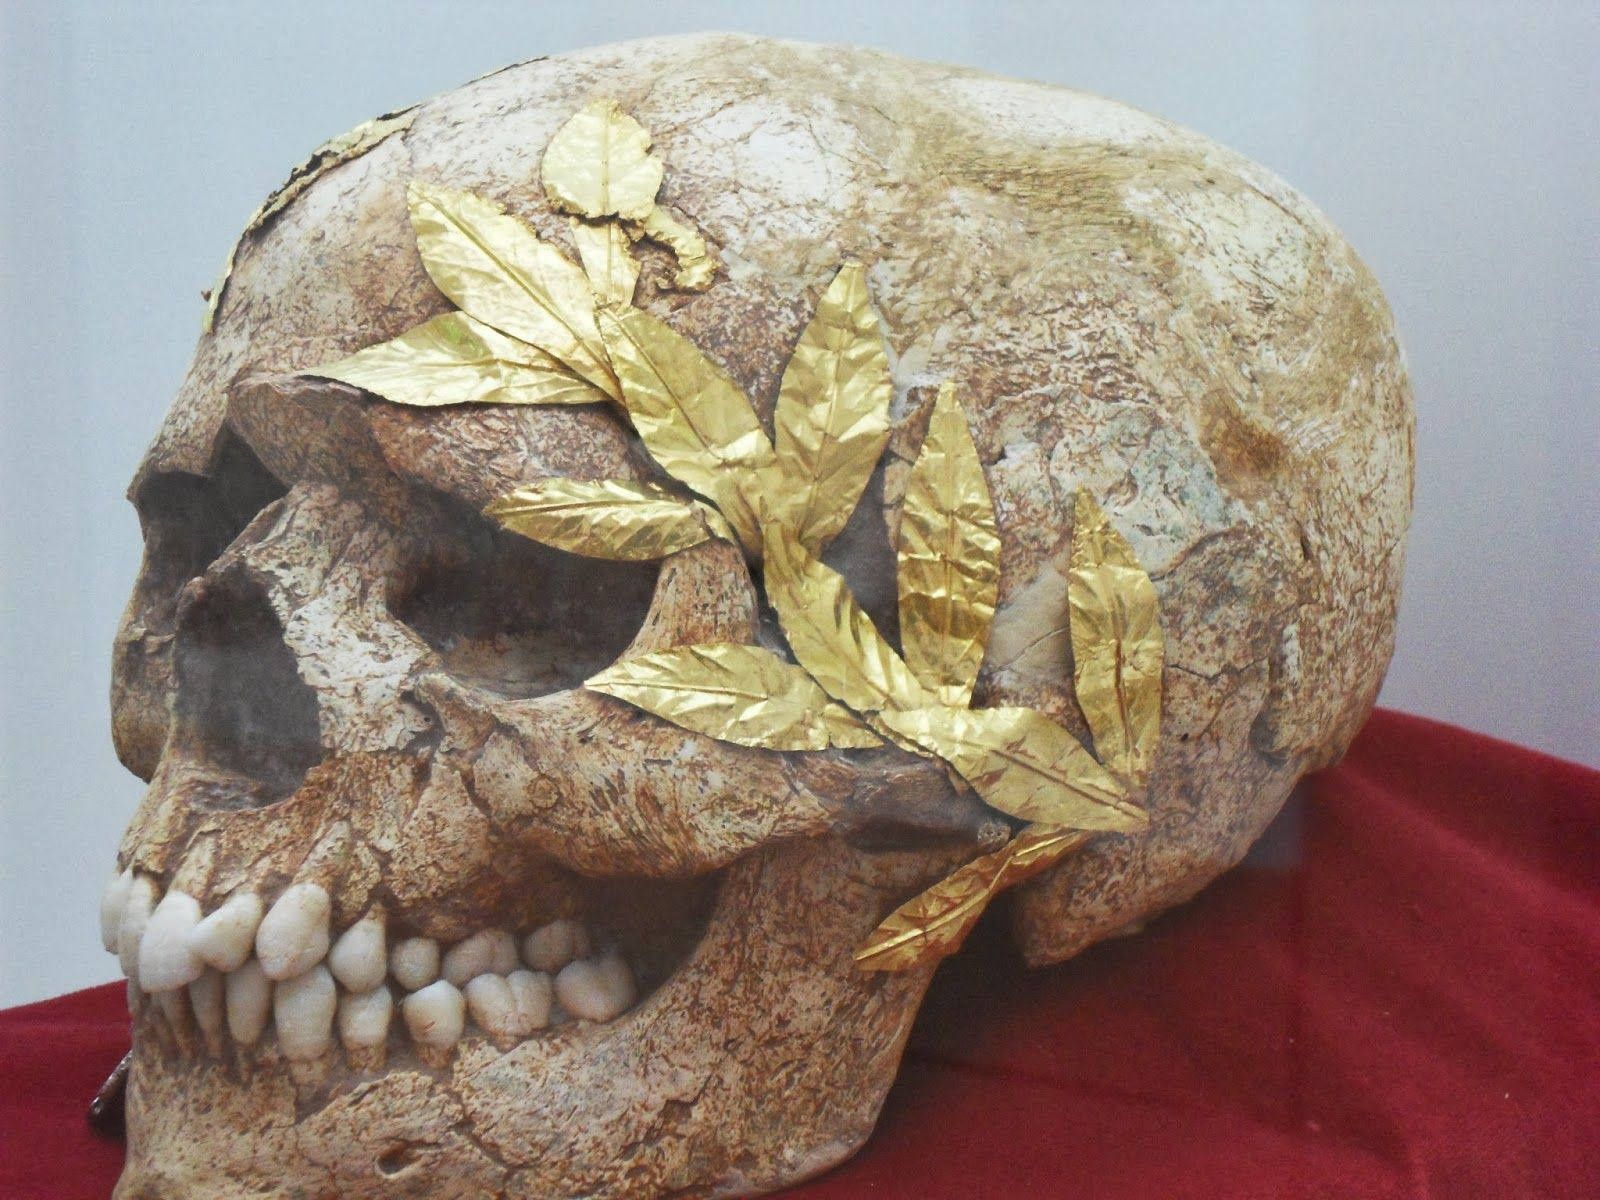 The Mysterious Skull With The Golden Wreath Of Protection